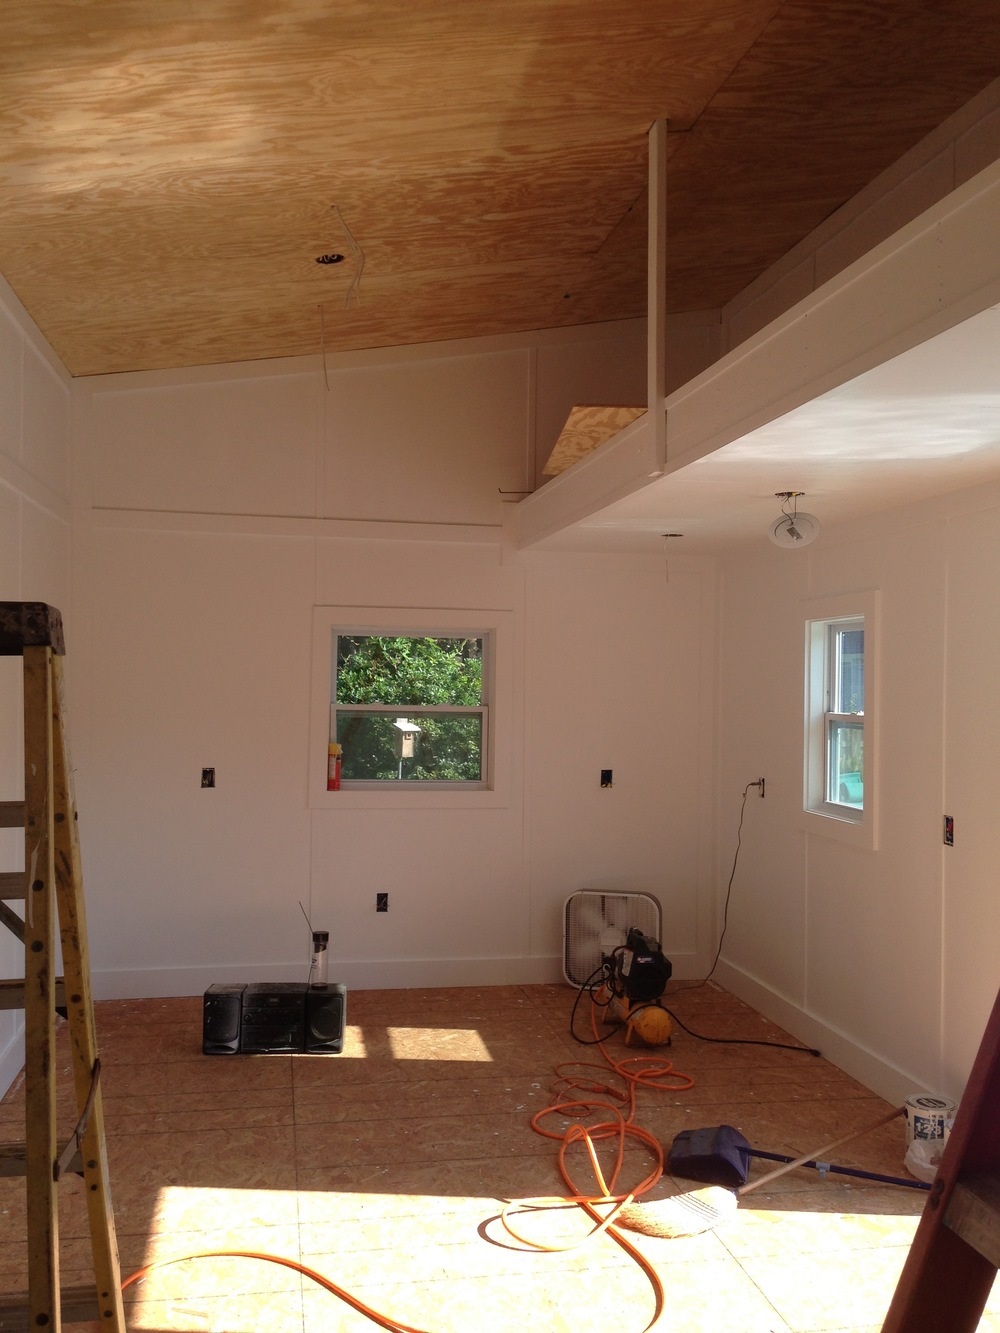 Varnish on the Ceiling and Walls painted!